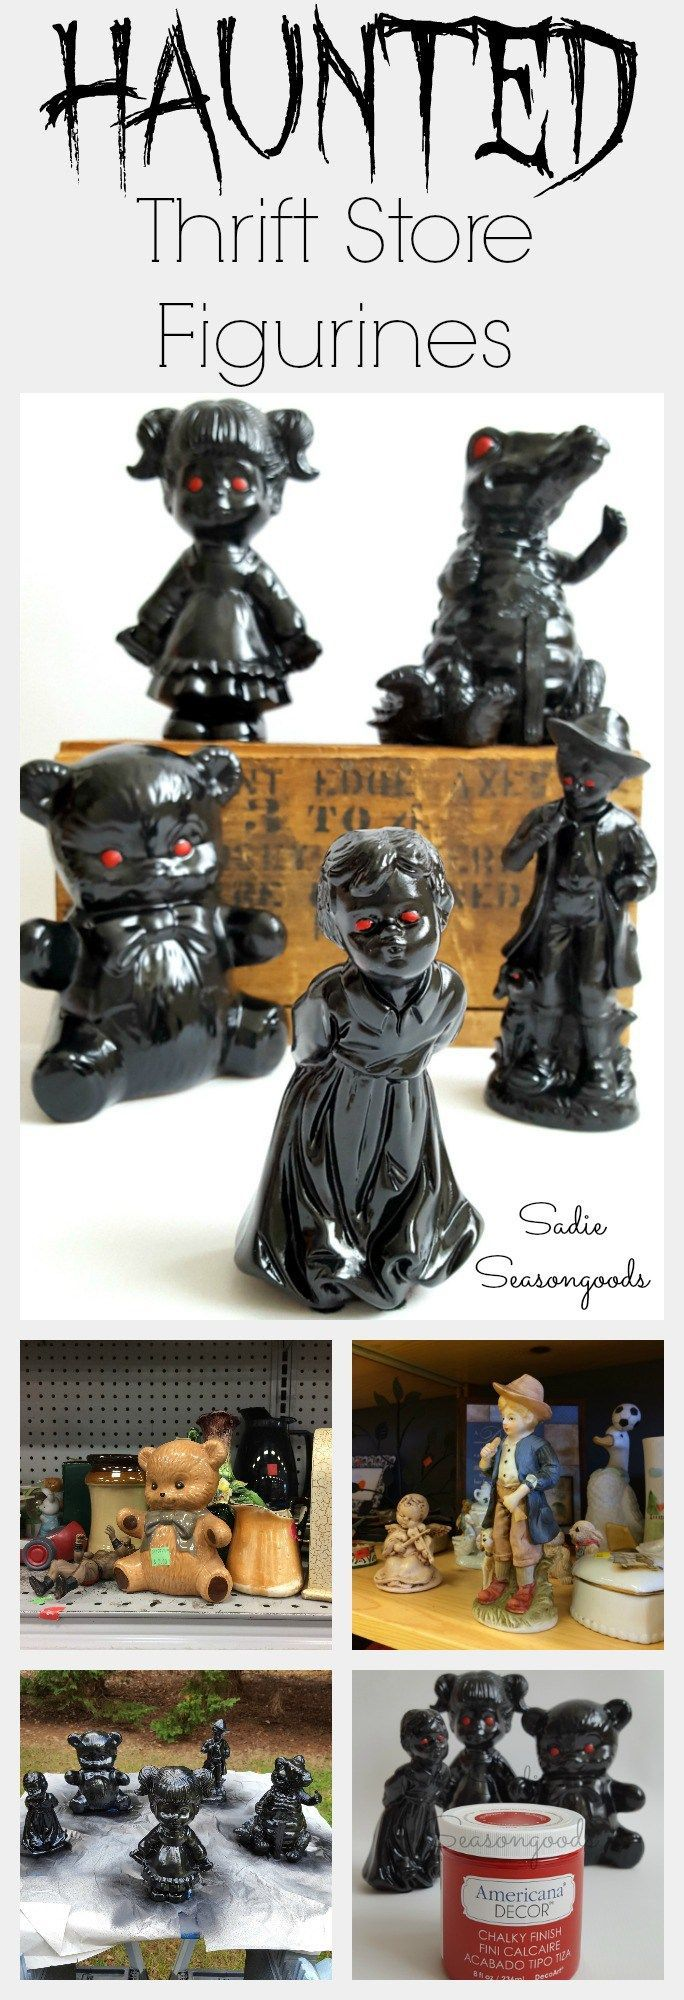 HALLOWEEN ALERT!!! This is perhaps the easist DIY Halloween repurpose / upcycle project of all time...anyone can do it, even if you're 0% crafty! Find some odd, unusual, weird, or even broken figurines at a thrift store, spray paint them black, and give them haunted red eyes. It's that easy! Perhaps last minute Halloween decor if you've procrastinated this year. :) Boo! #SadieSeasongoods / www.sadieseasongoods.com